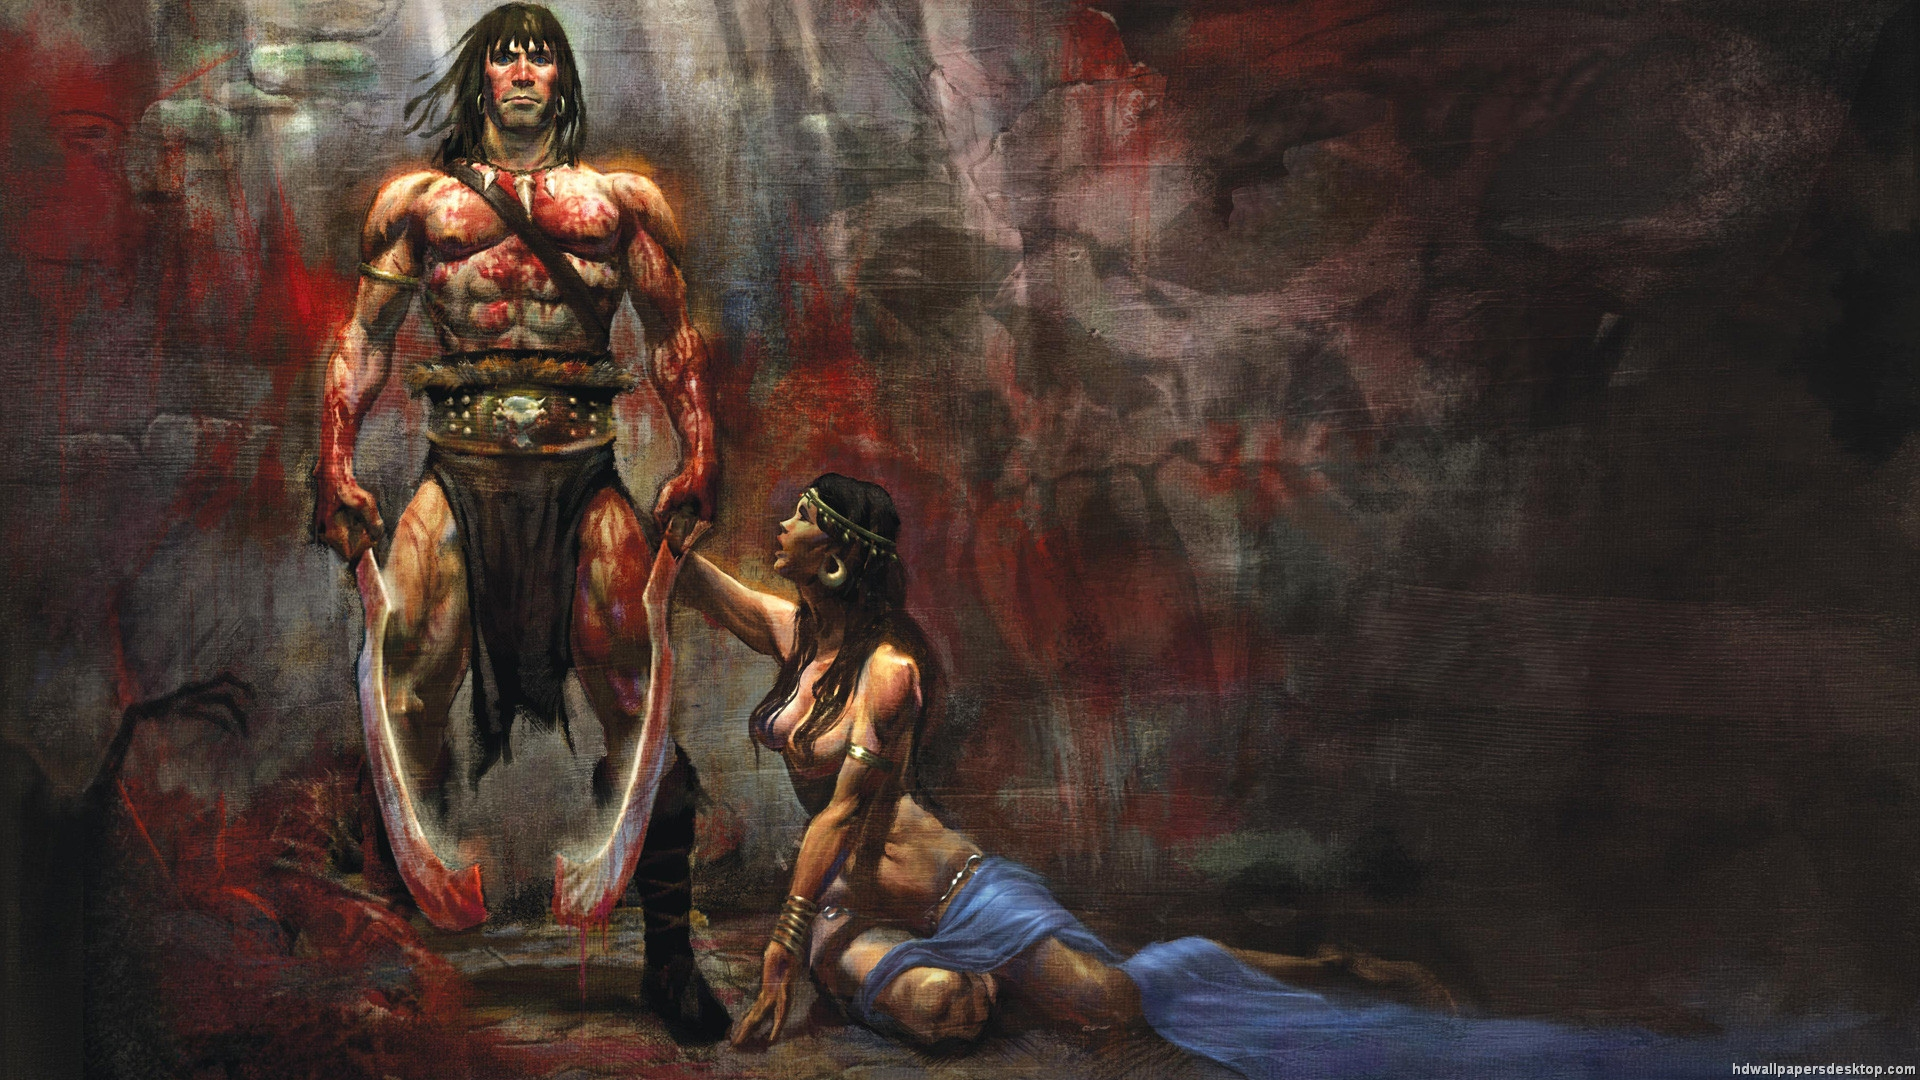 Conan the Barbarian Art 1920x1080